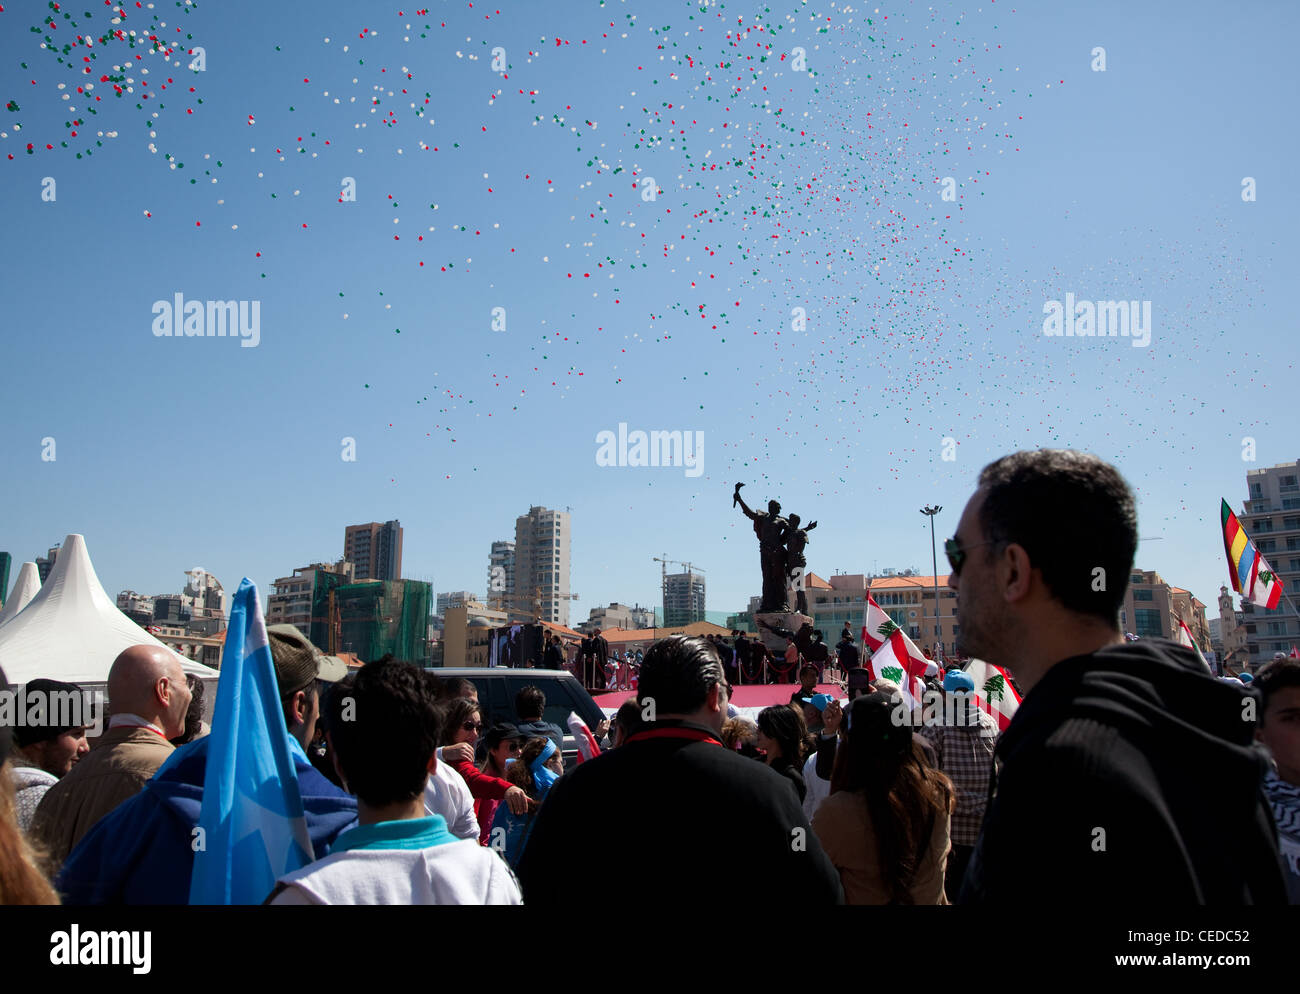 Balloons fly over Martyrs Square, Beirut, Lebanon, at a political rally which up to a million people attend. - Stock Image